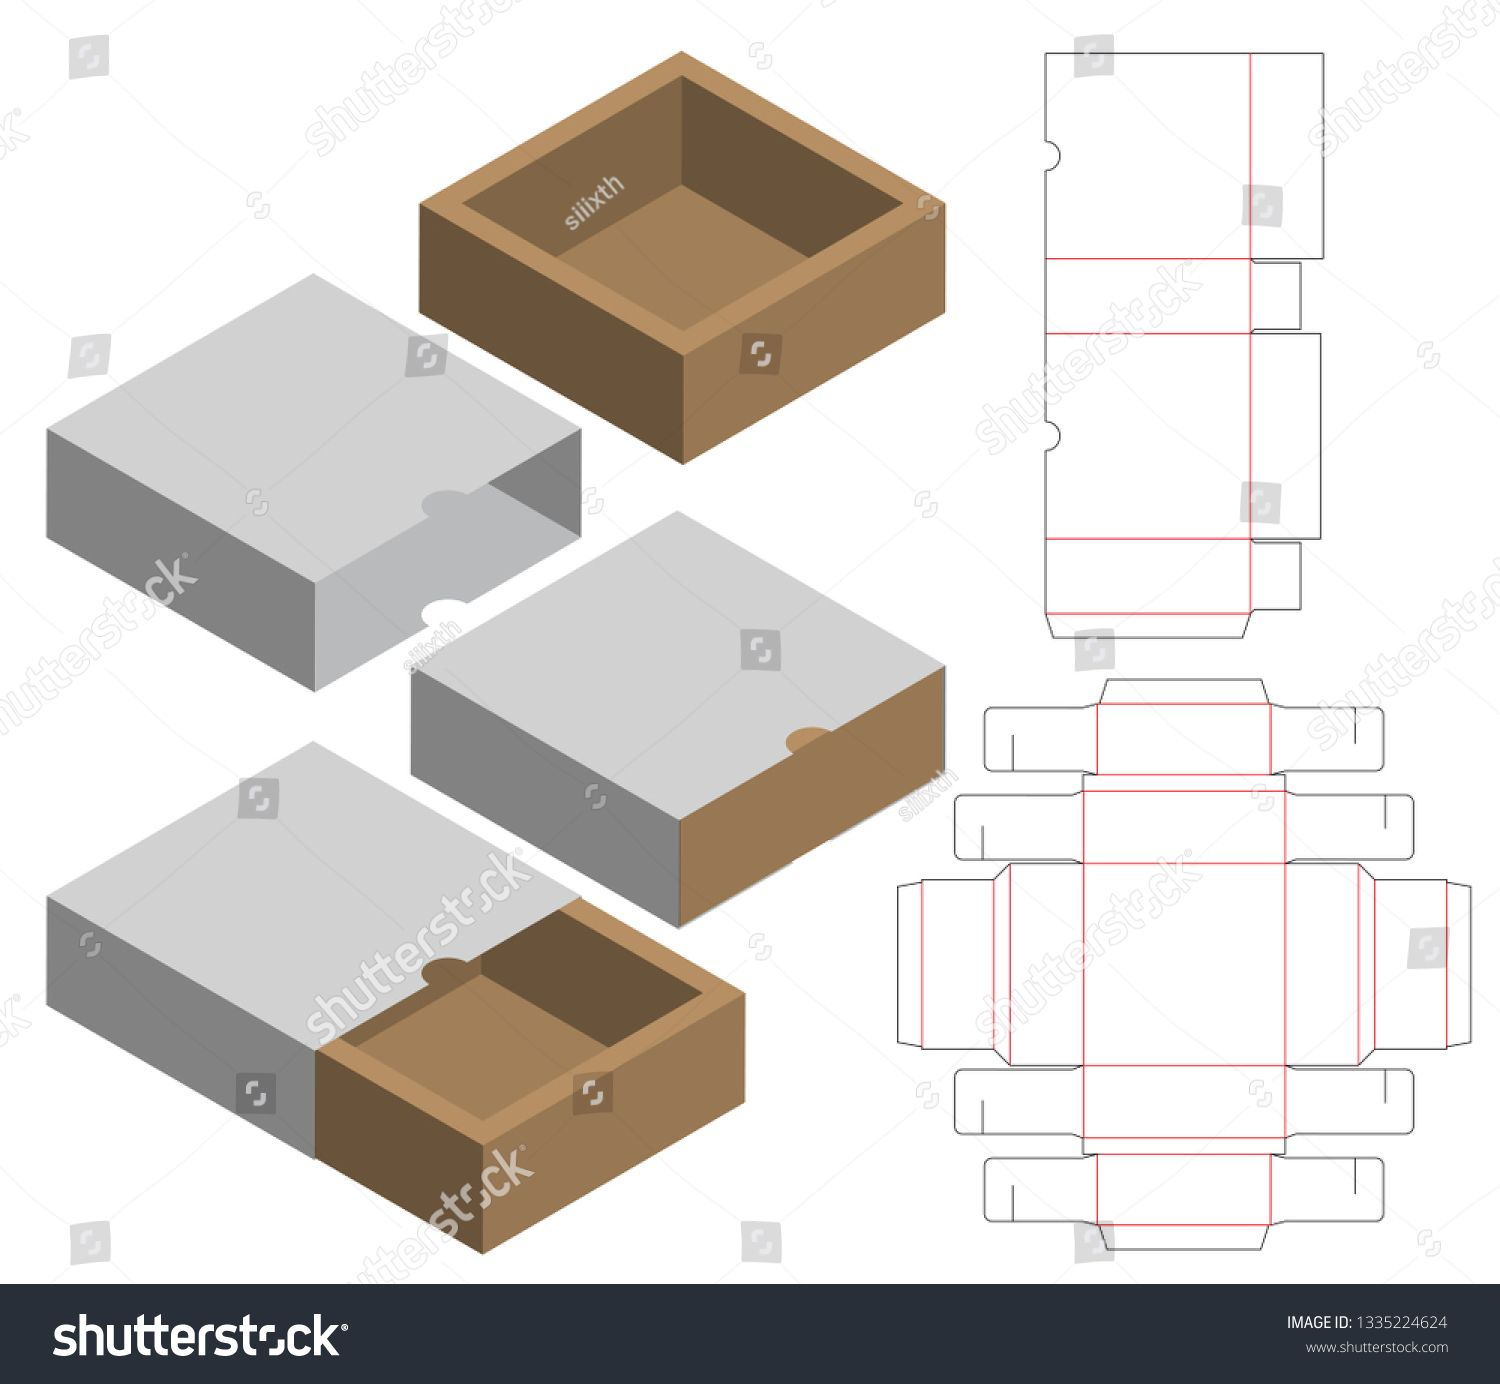 Pizza Box Layout Box Layout Box Design Templates Packaging Template Design